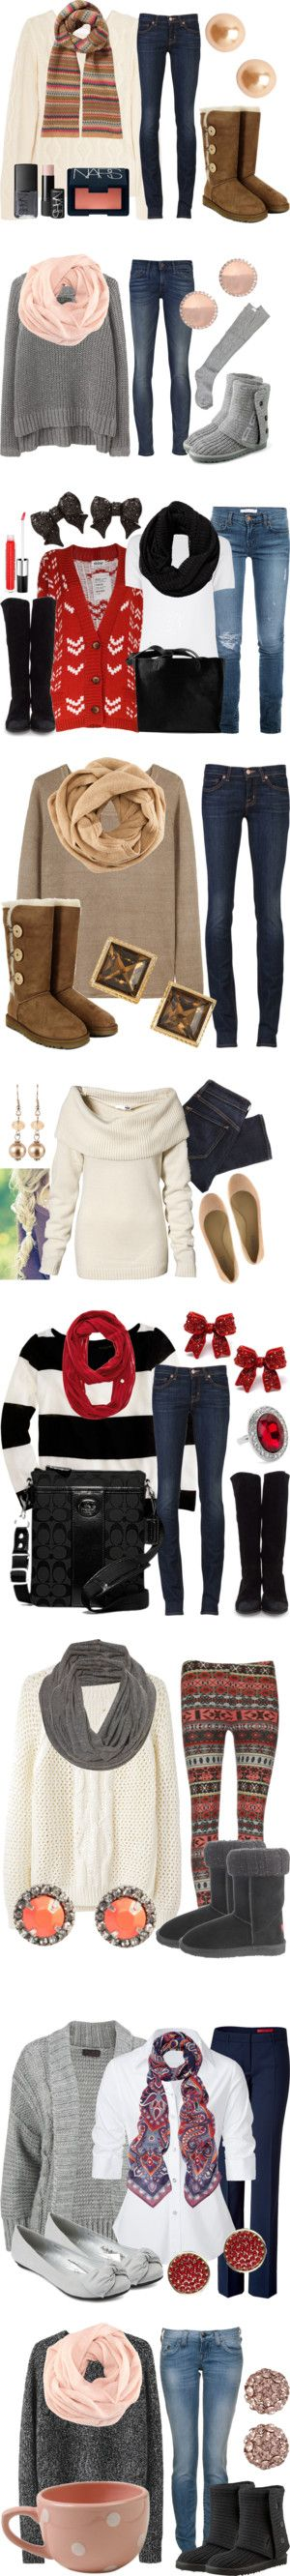 """Winter Wardrobe"" by qtpiekelso on Polyvore"